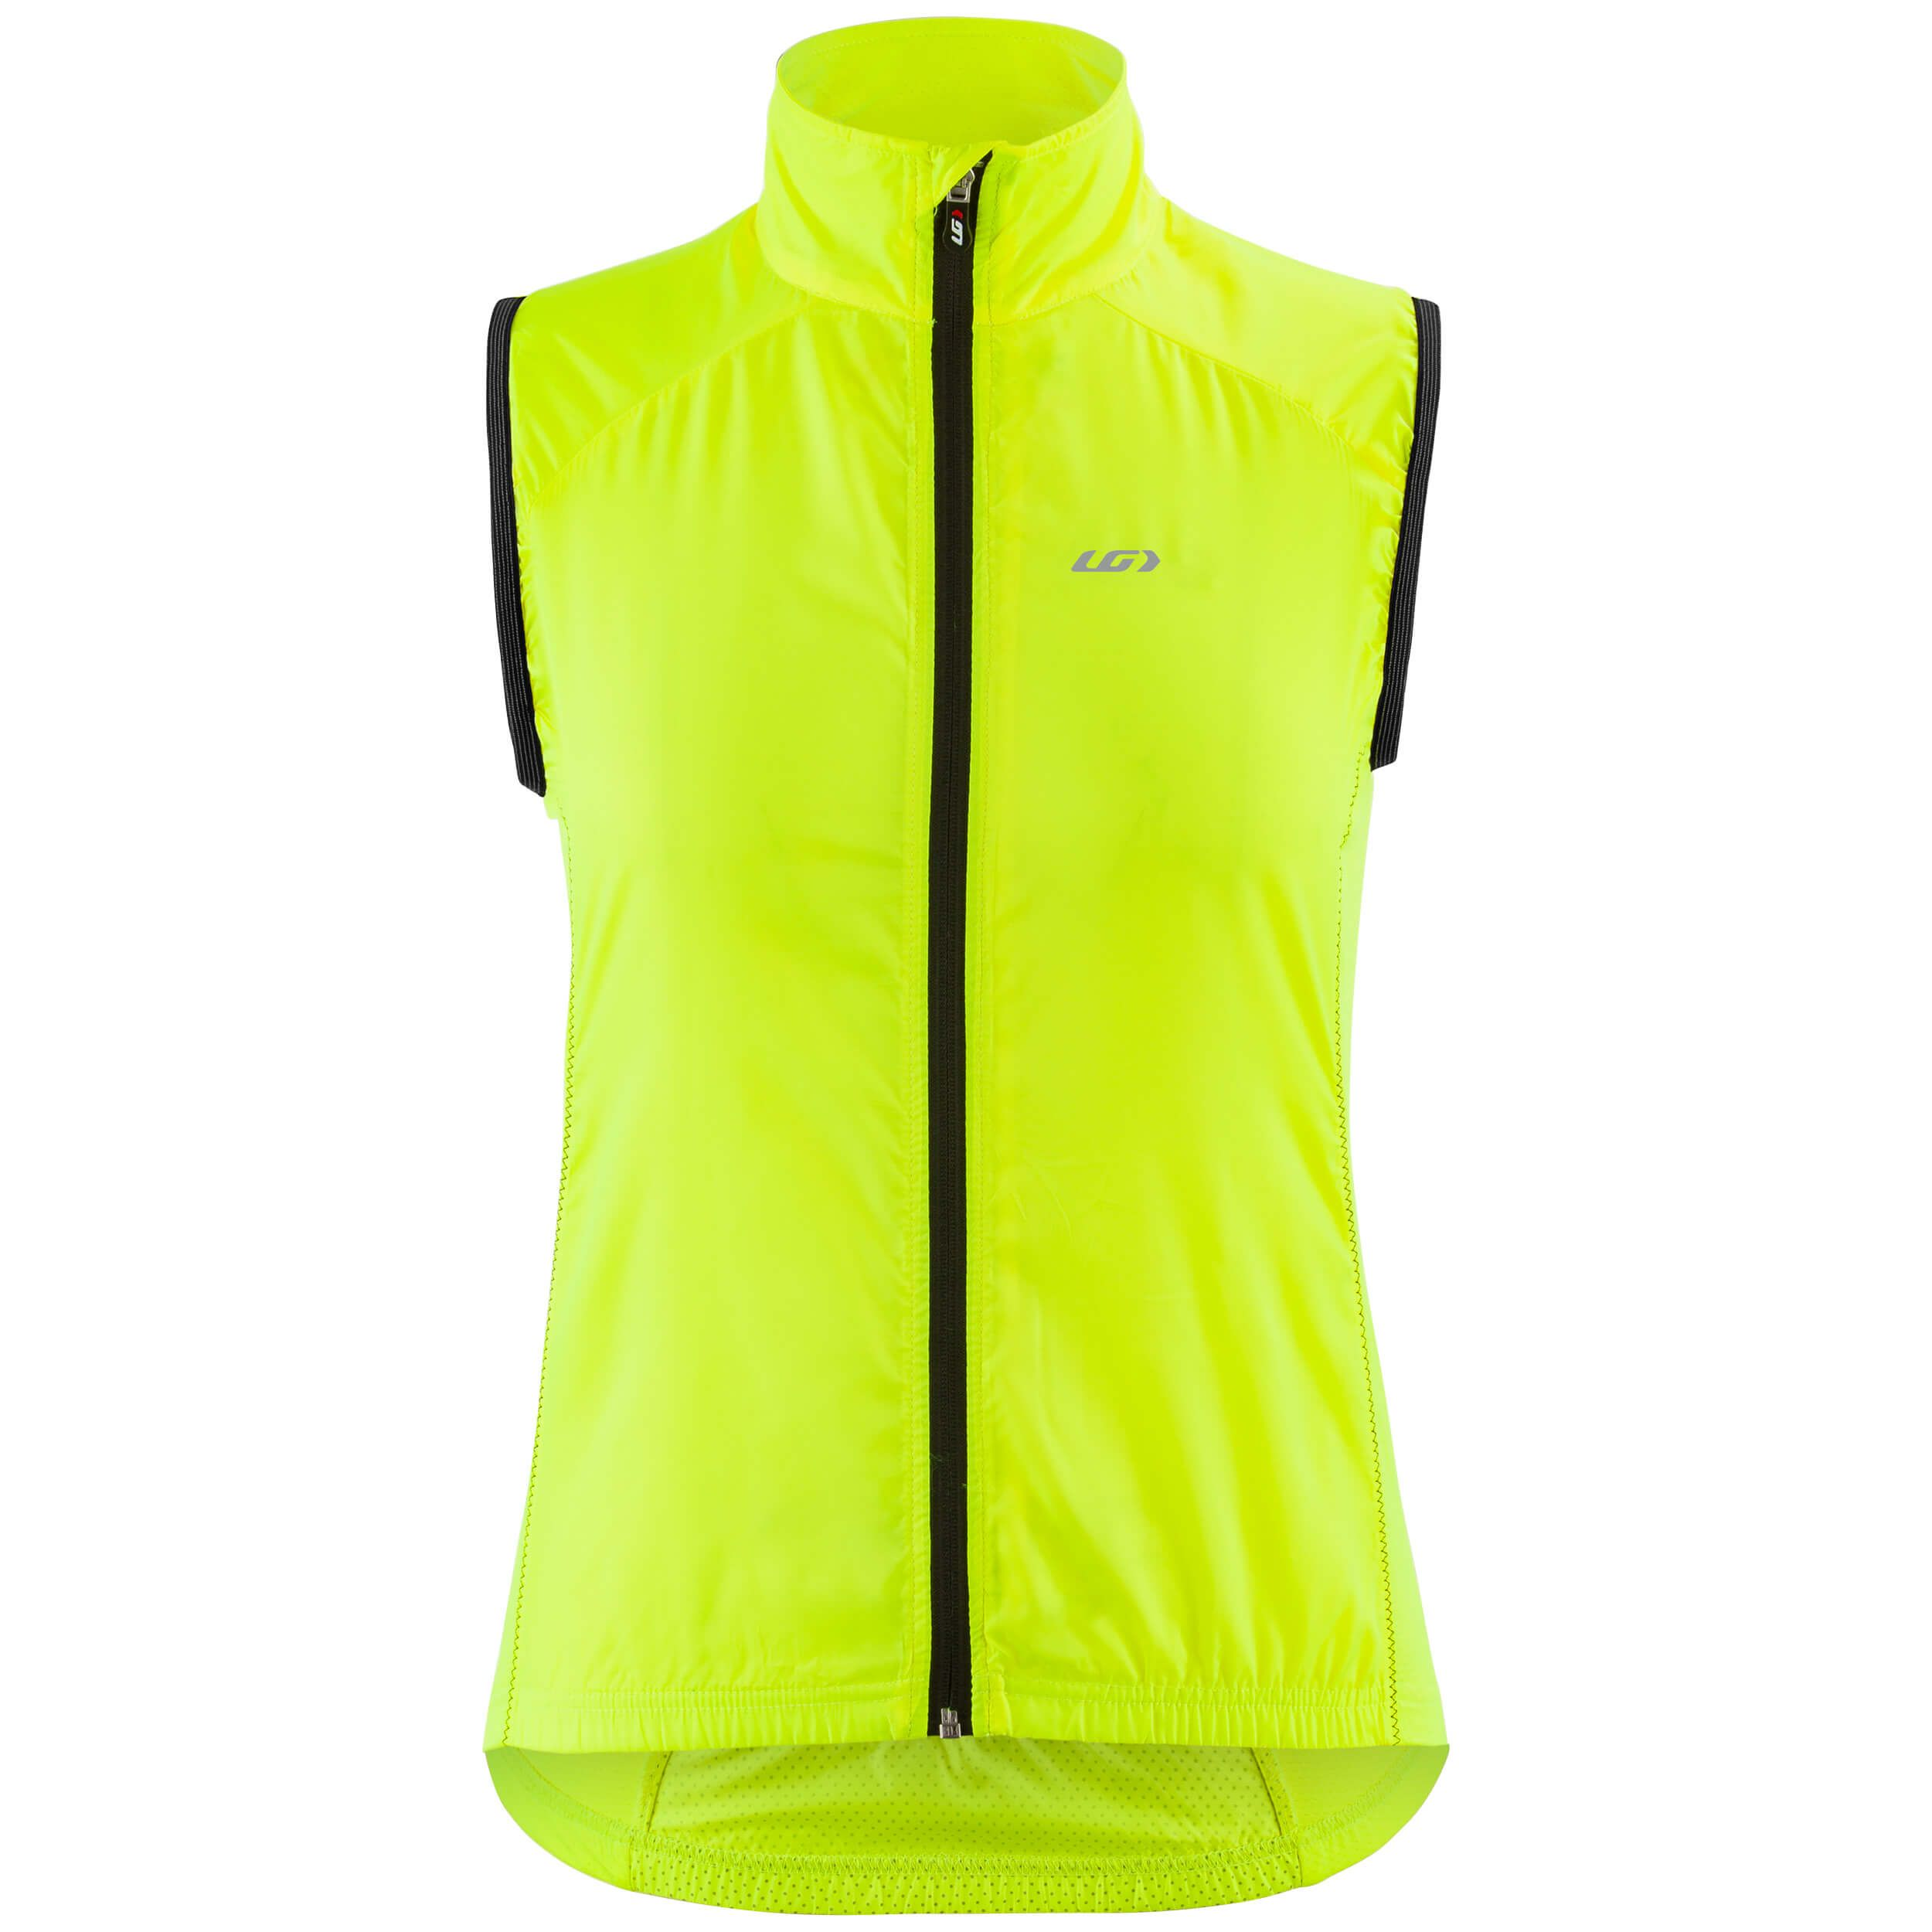 Women s Nova 2 Cycling Vest. Tap to expand 1fa3de28d